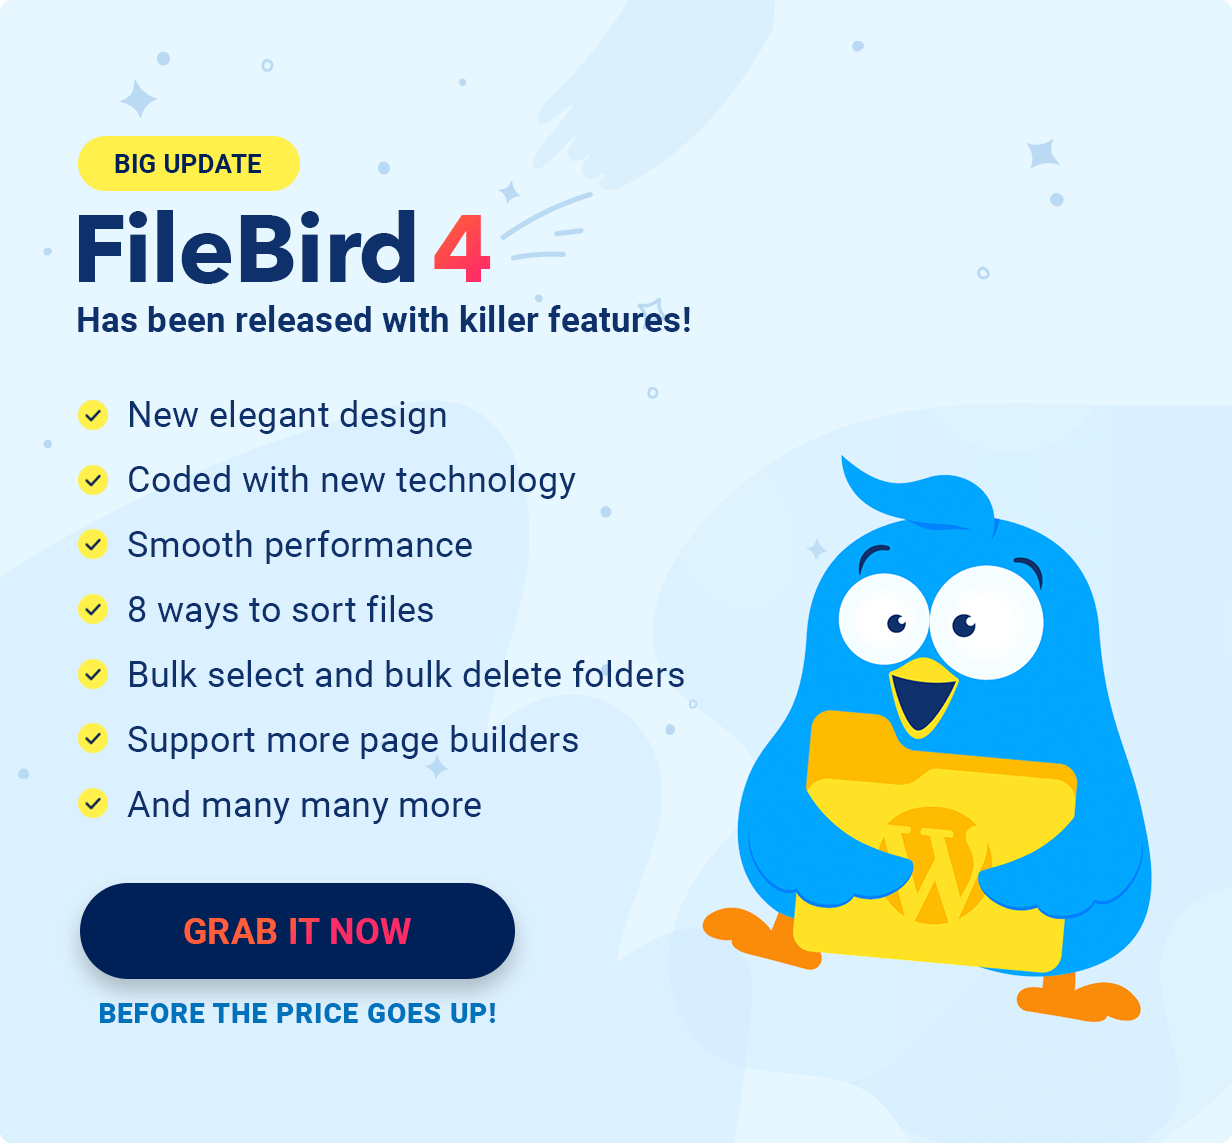 FileBird 4 - Big Update